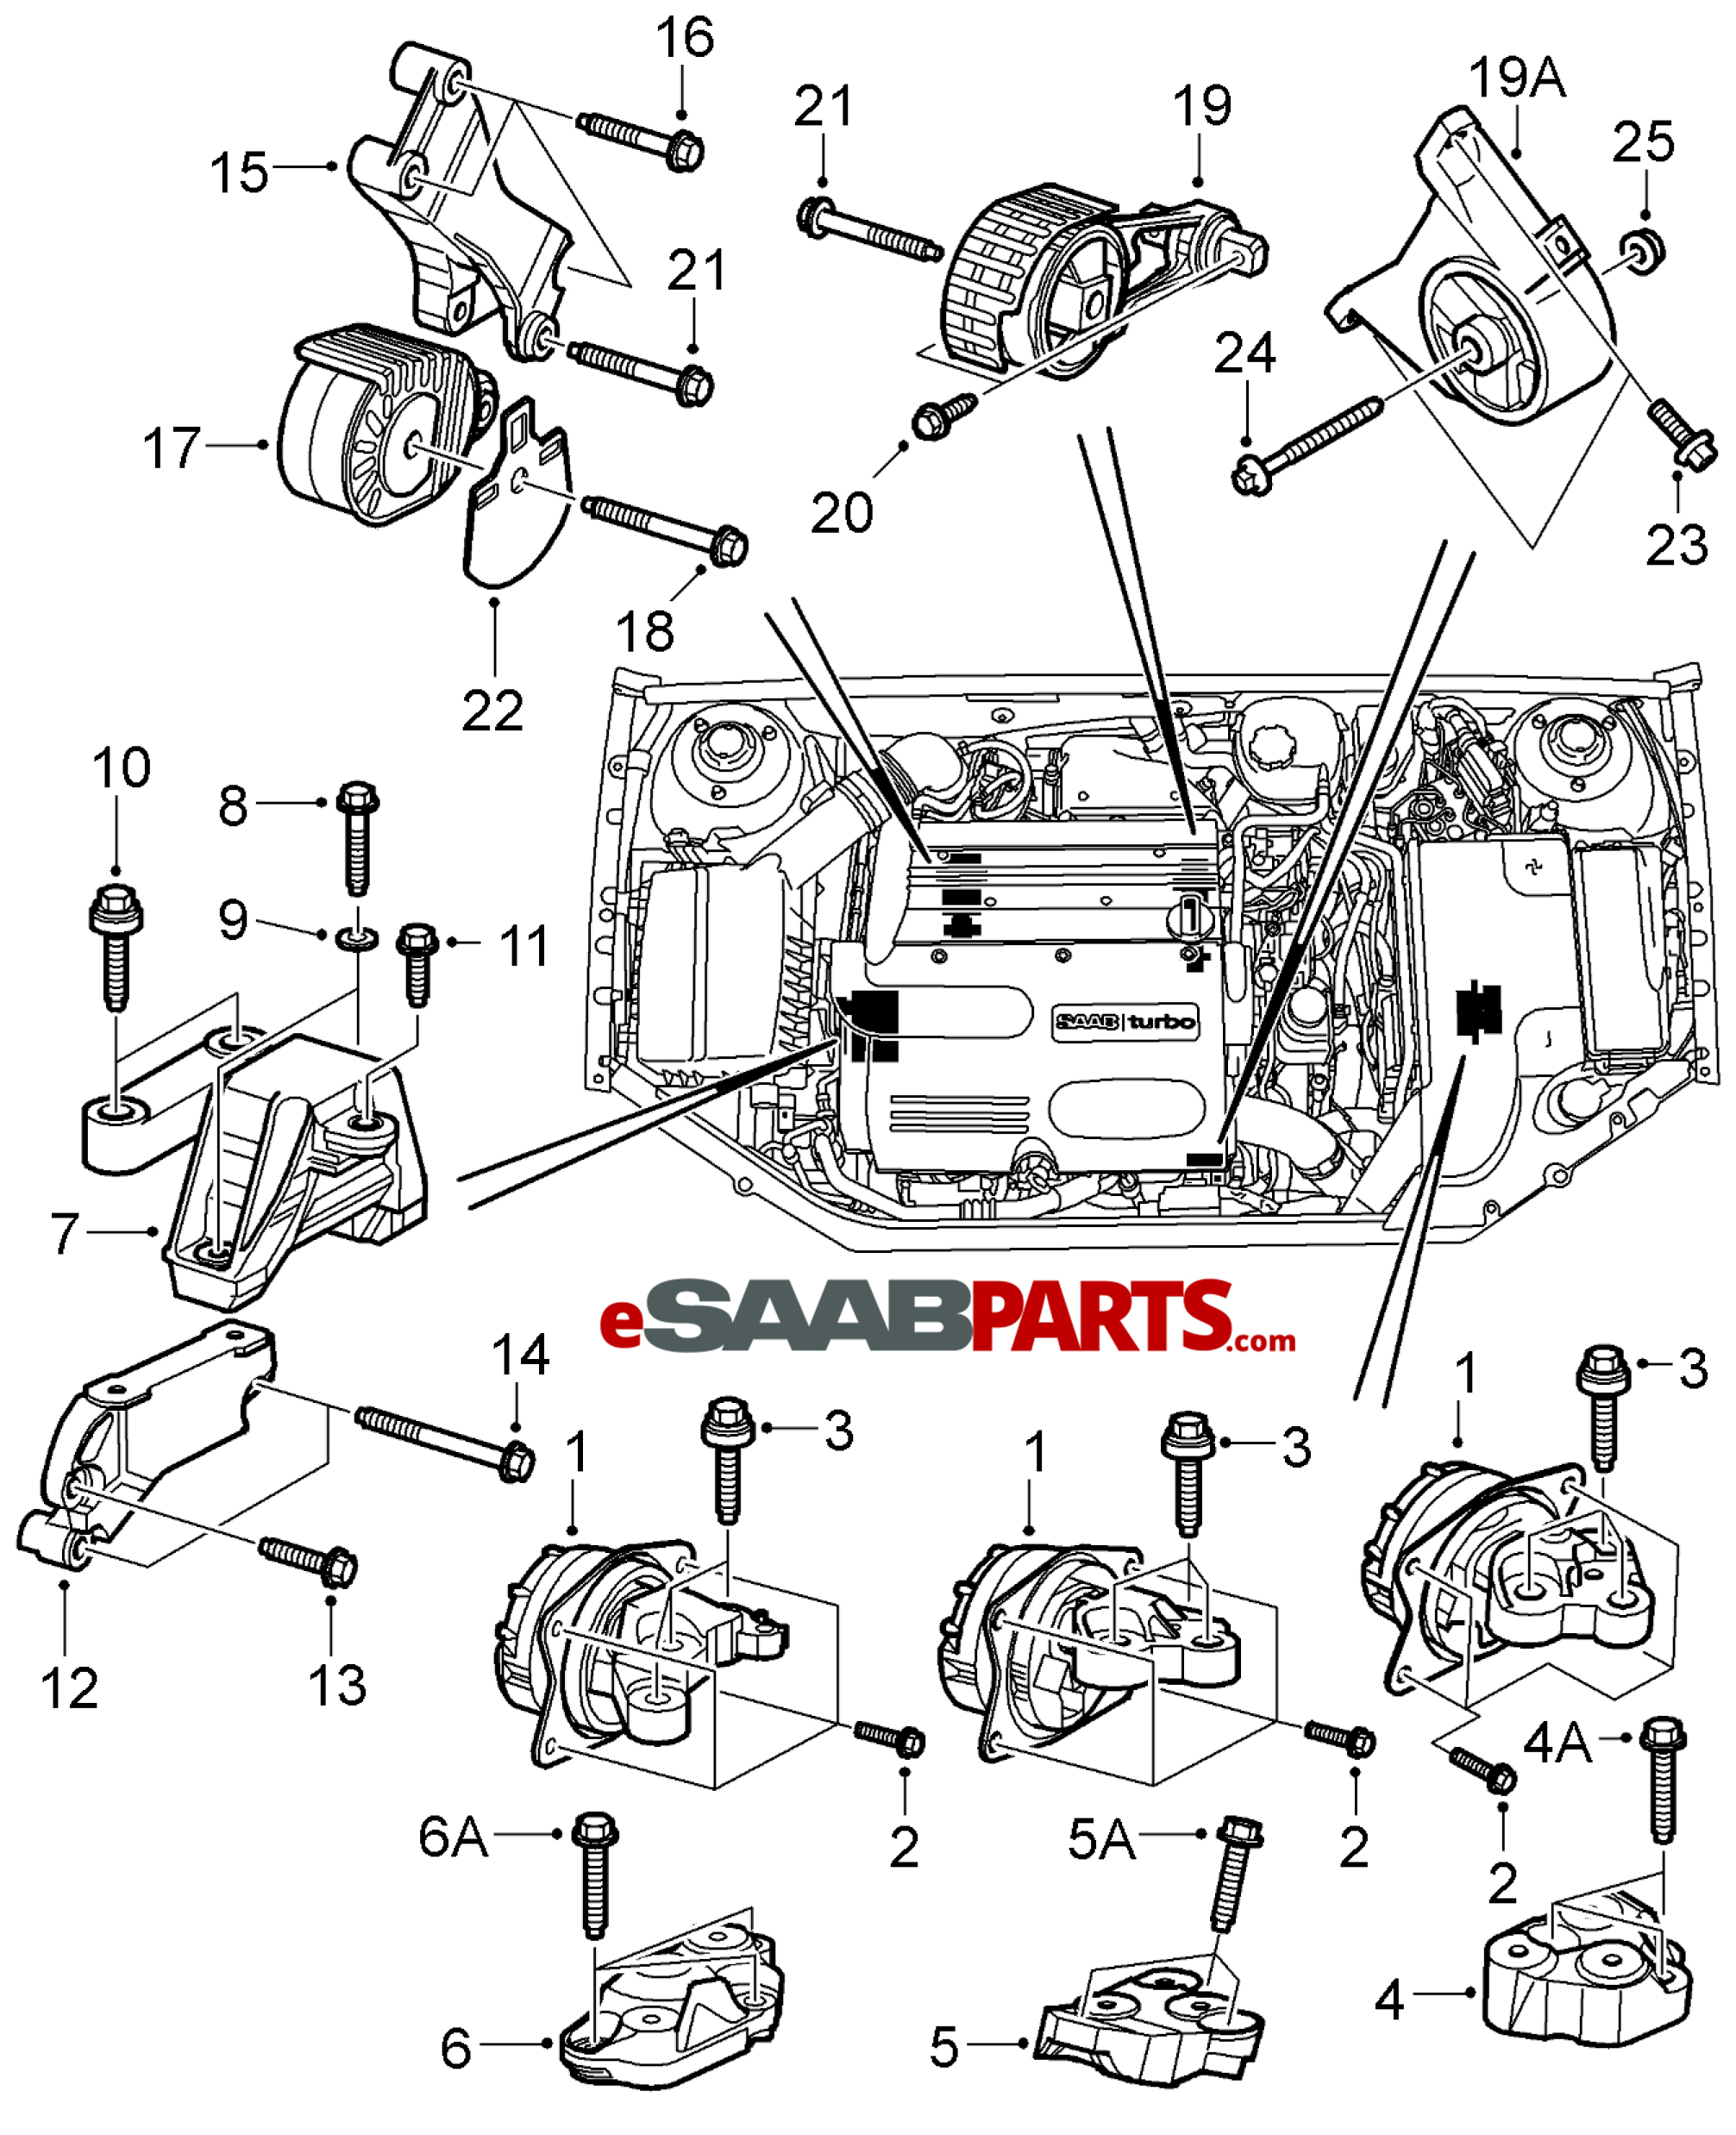 Saab 9 3 Engine Diagram